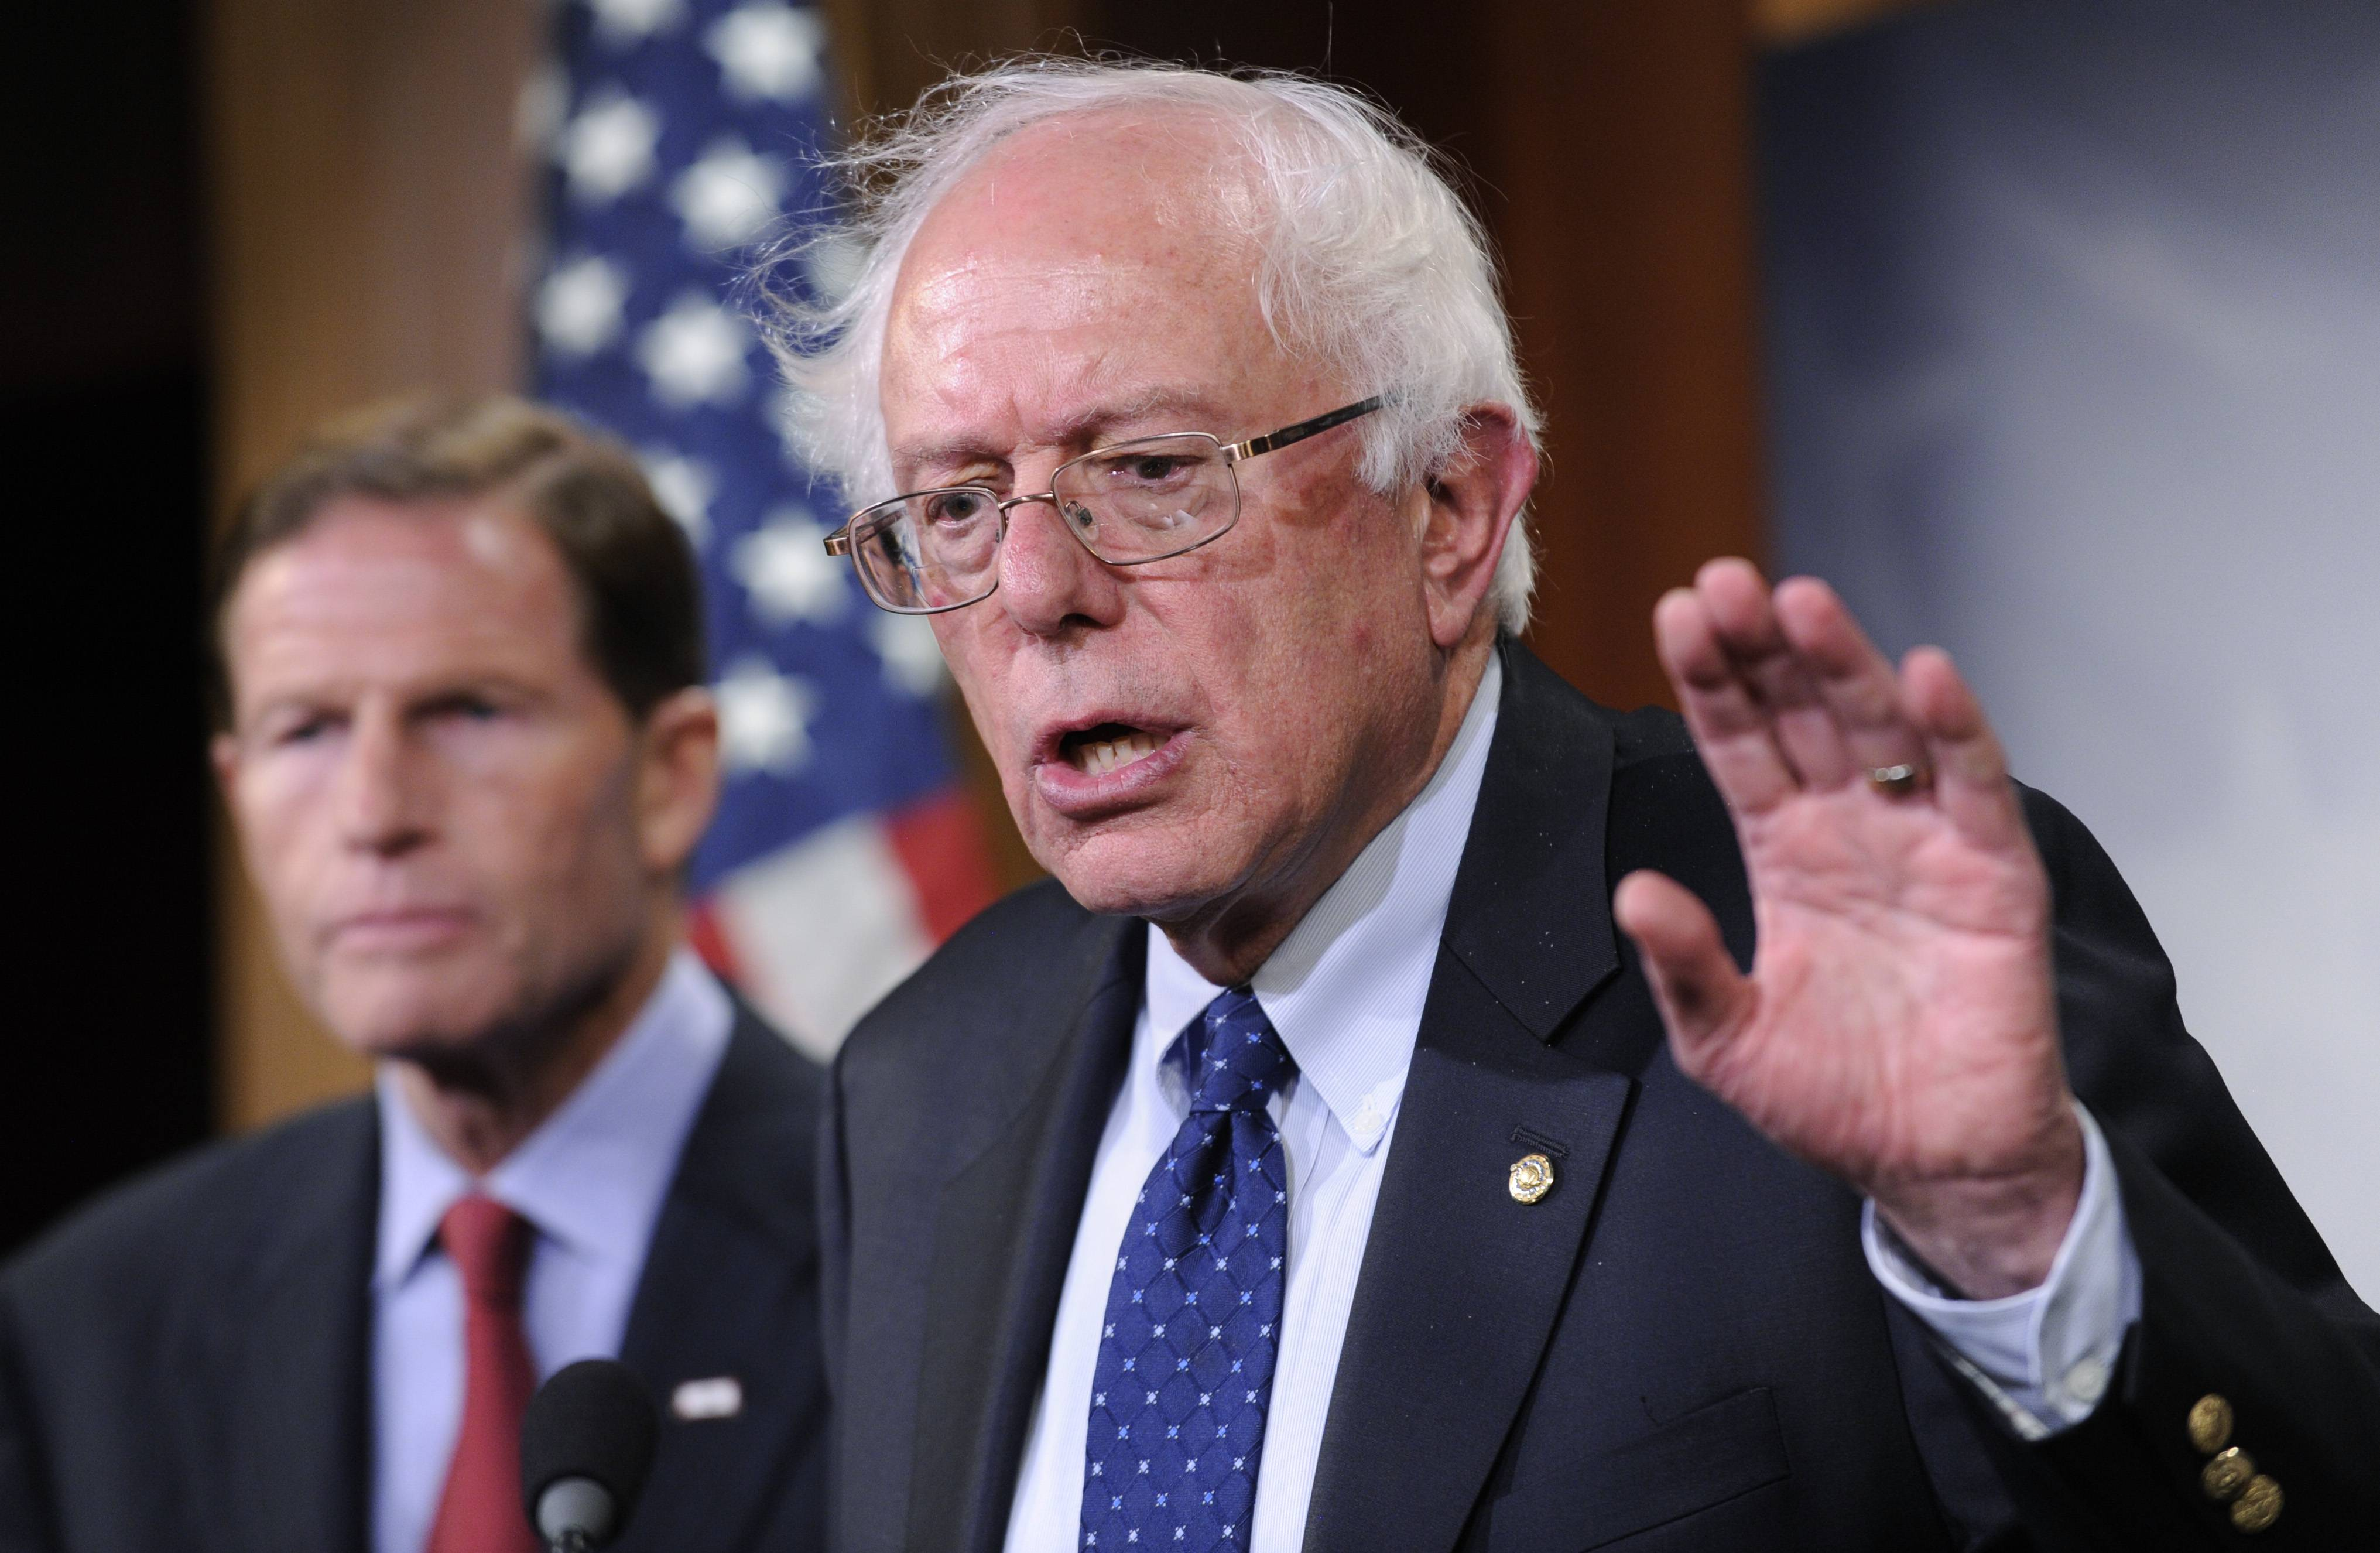 Sen. Bernie Sanders, seen here, and House Veterans Affairs Committee Chairman Jeff Miller have reached a tentative agreement on a plan to fix a veterans' health program scandalized by long patient wait times and falsified records covering up delays.